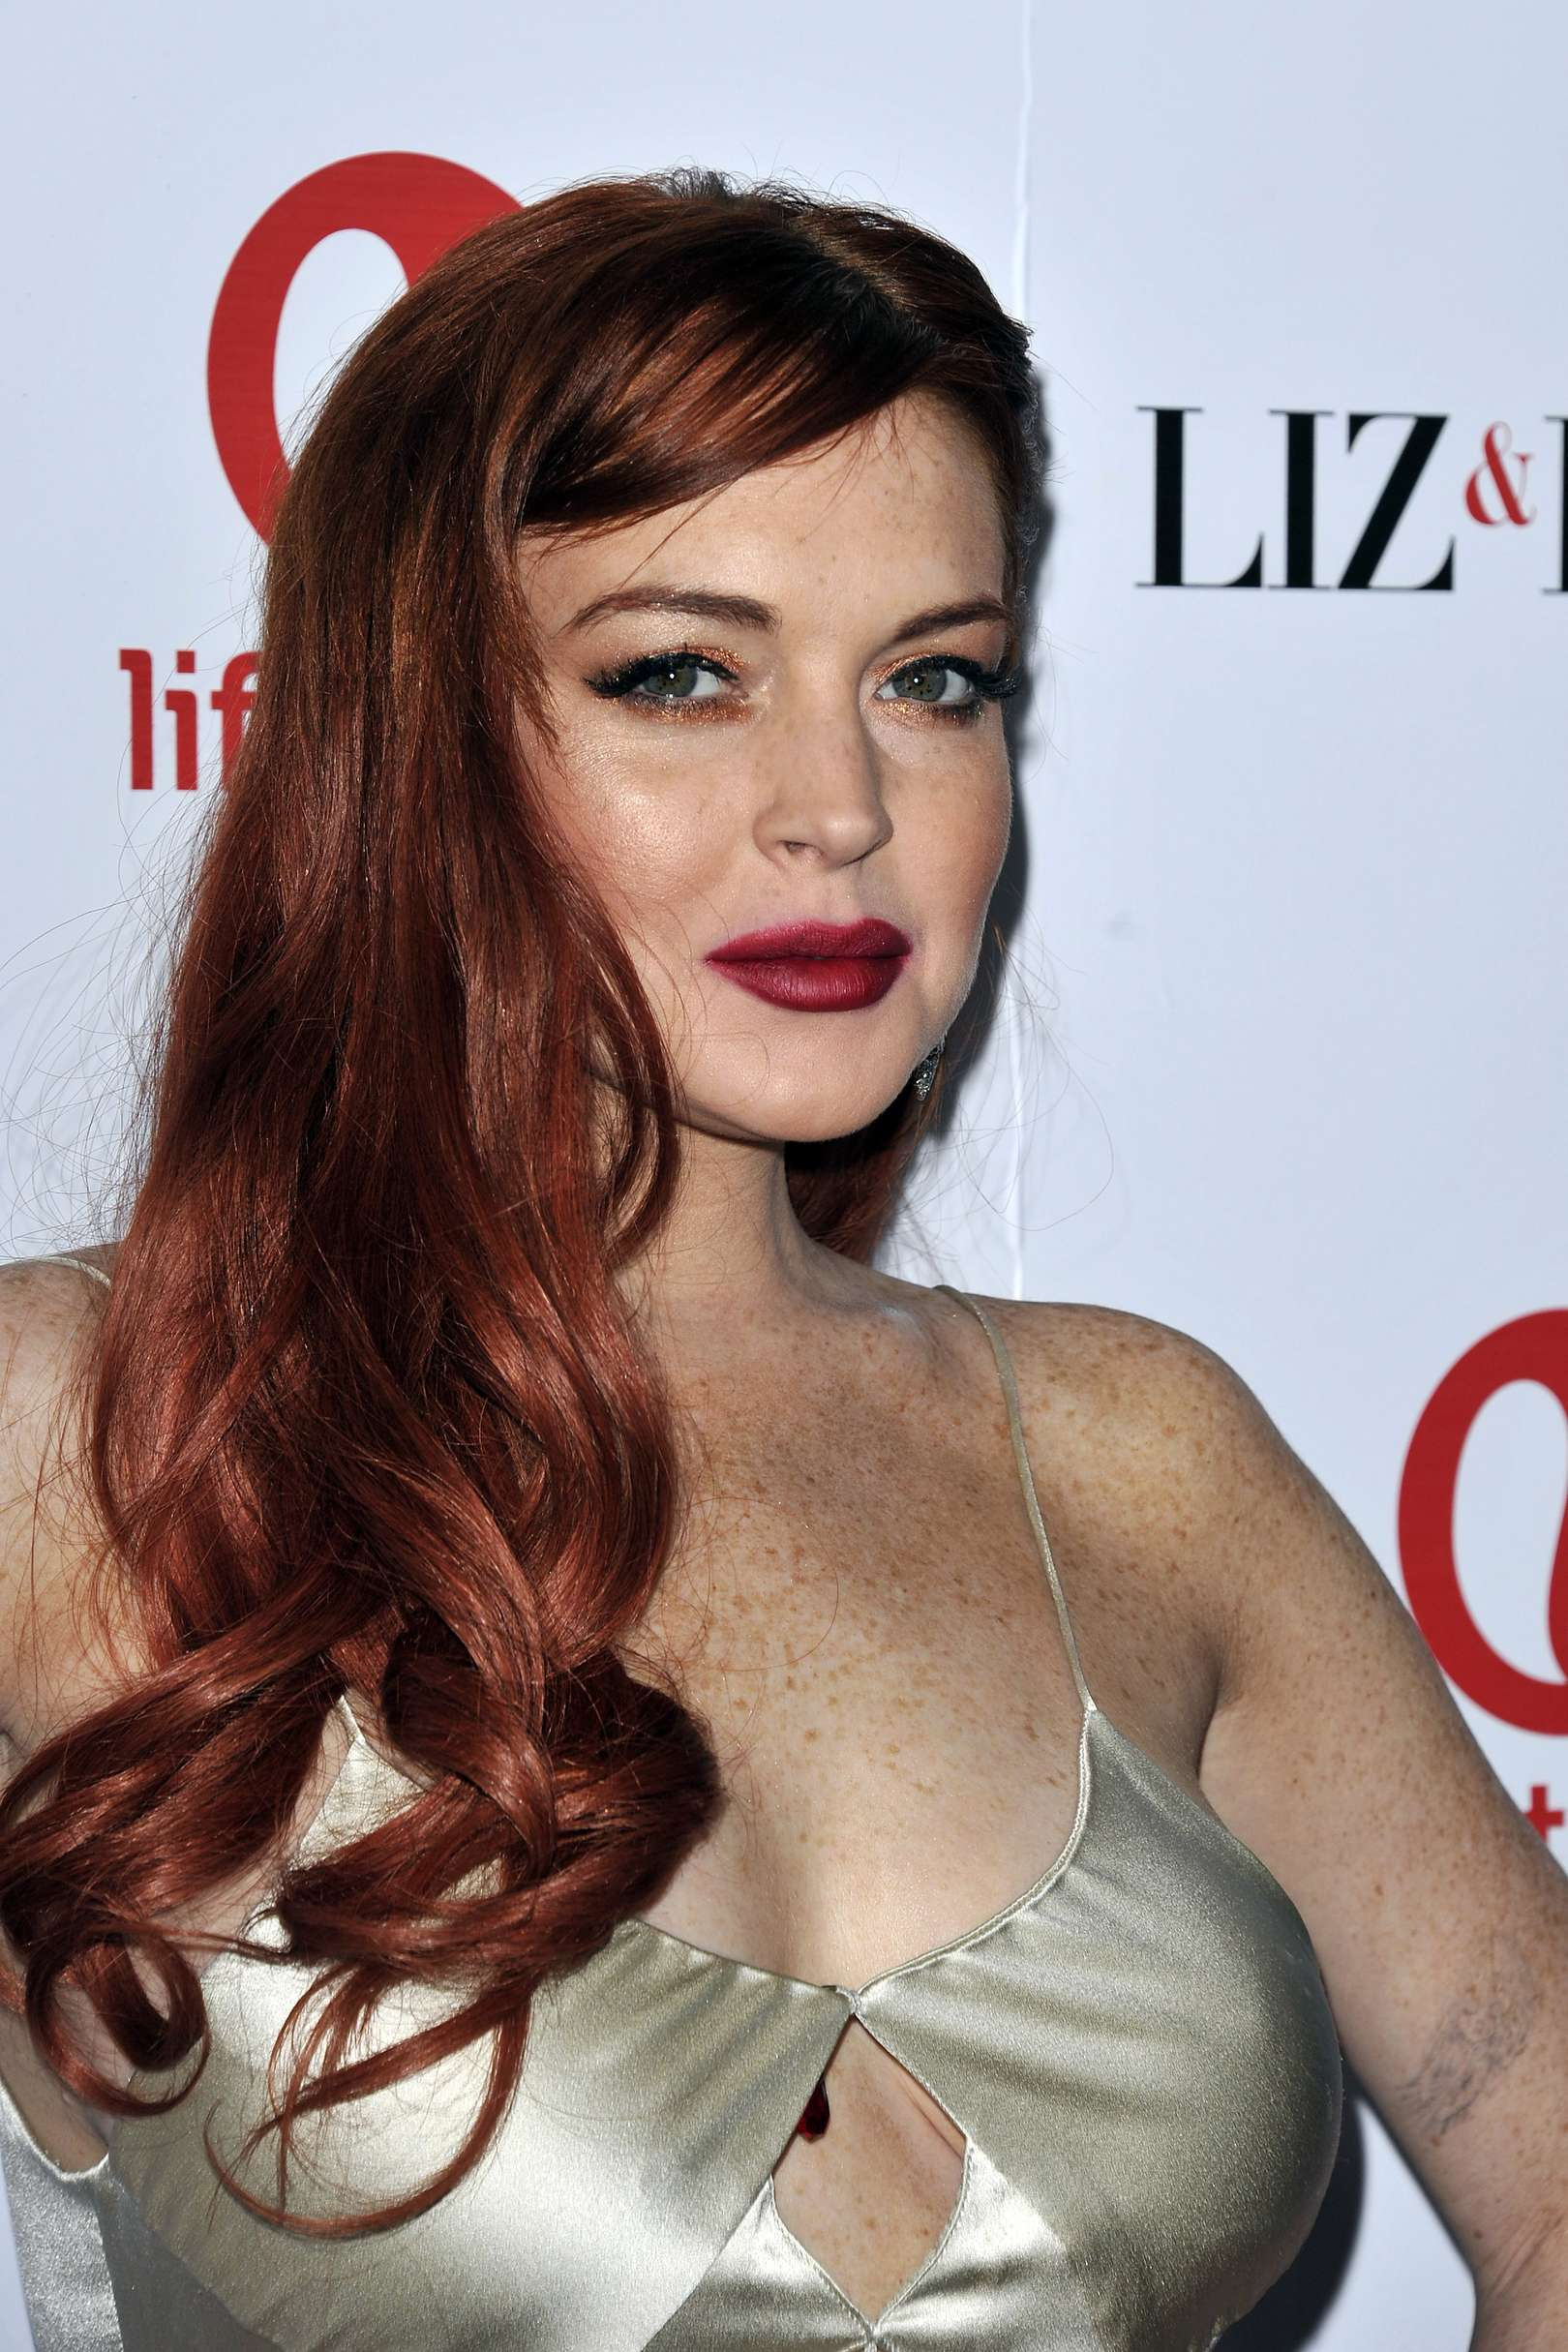 Lindsay Lohan at the premiere of 'Liz & Dick'